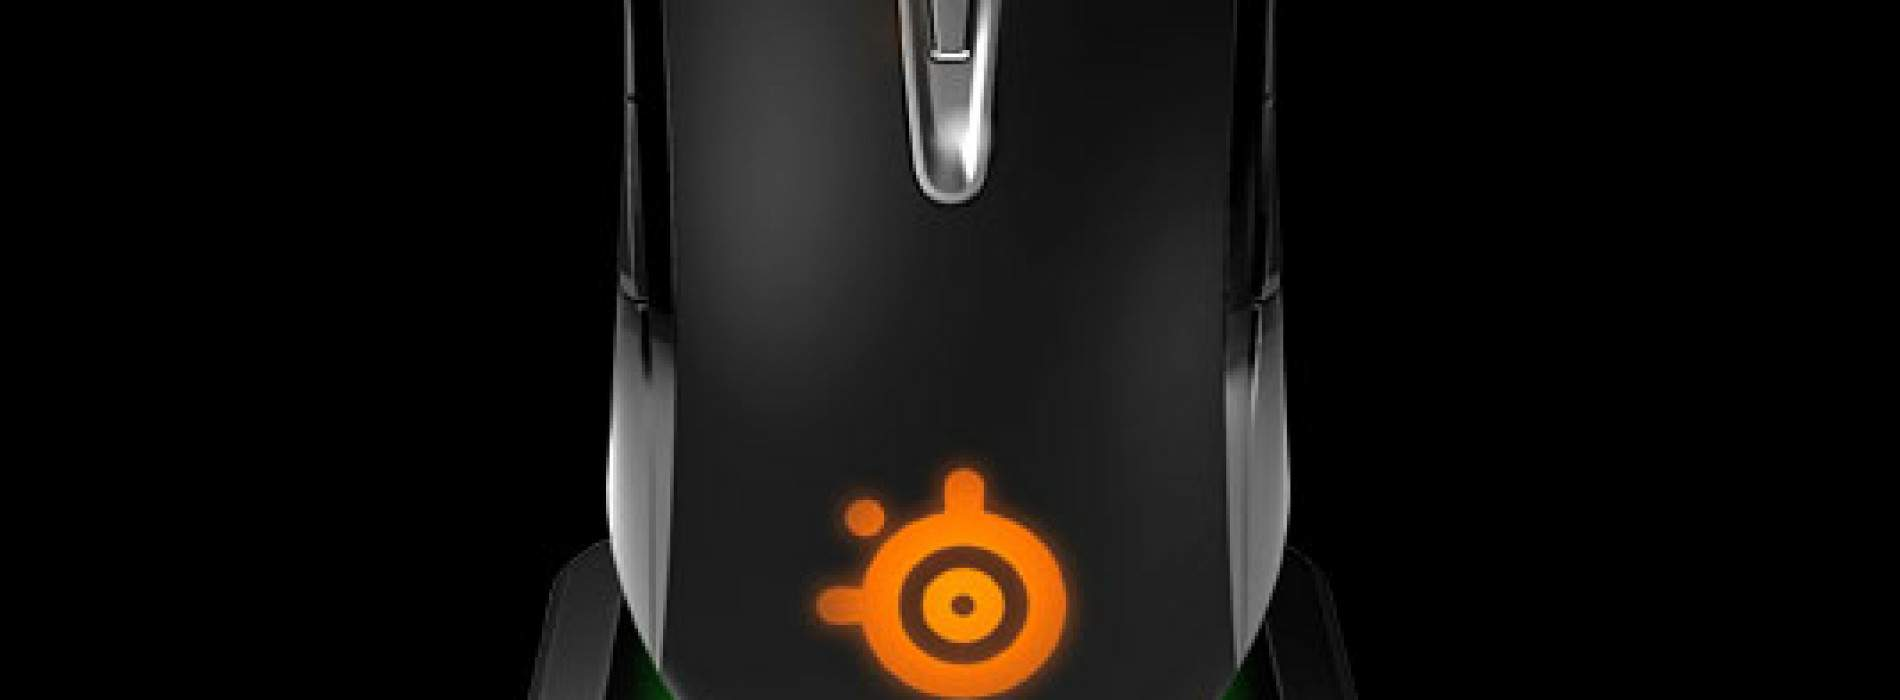 Sensei Wireless, ratón gaming inalámbrico de Steelseries